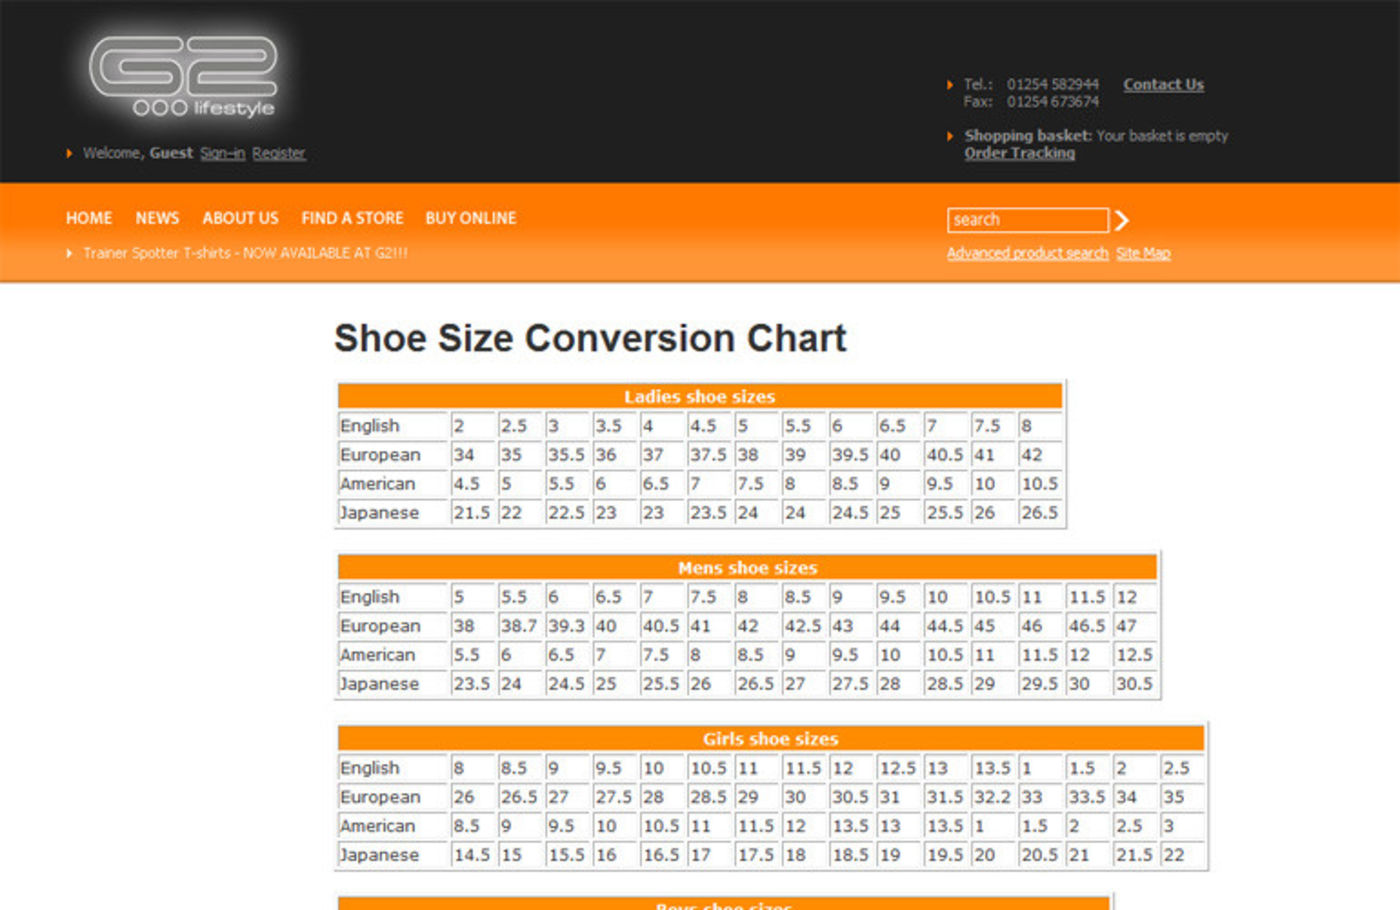 G2 Lifestyle Shoe Size Conversion Chart